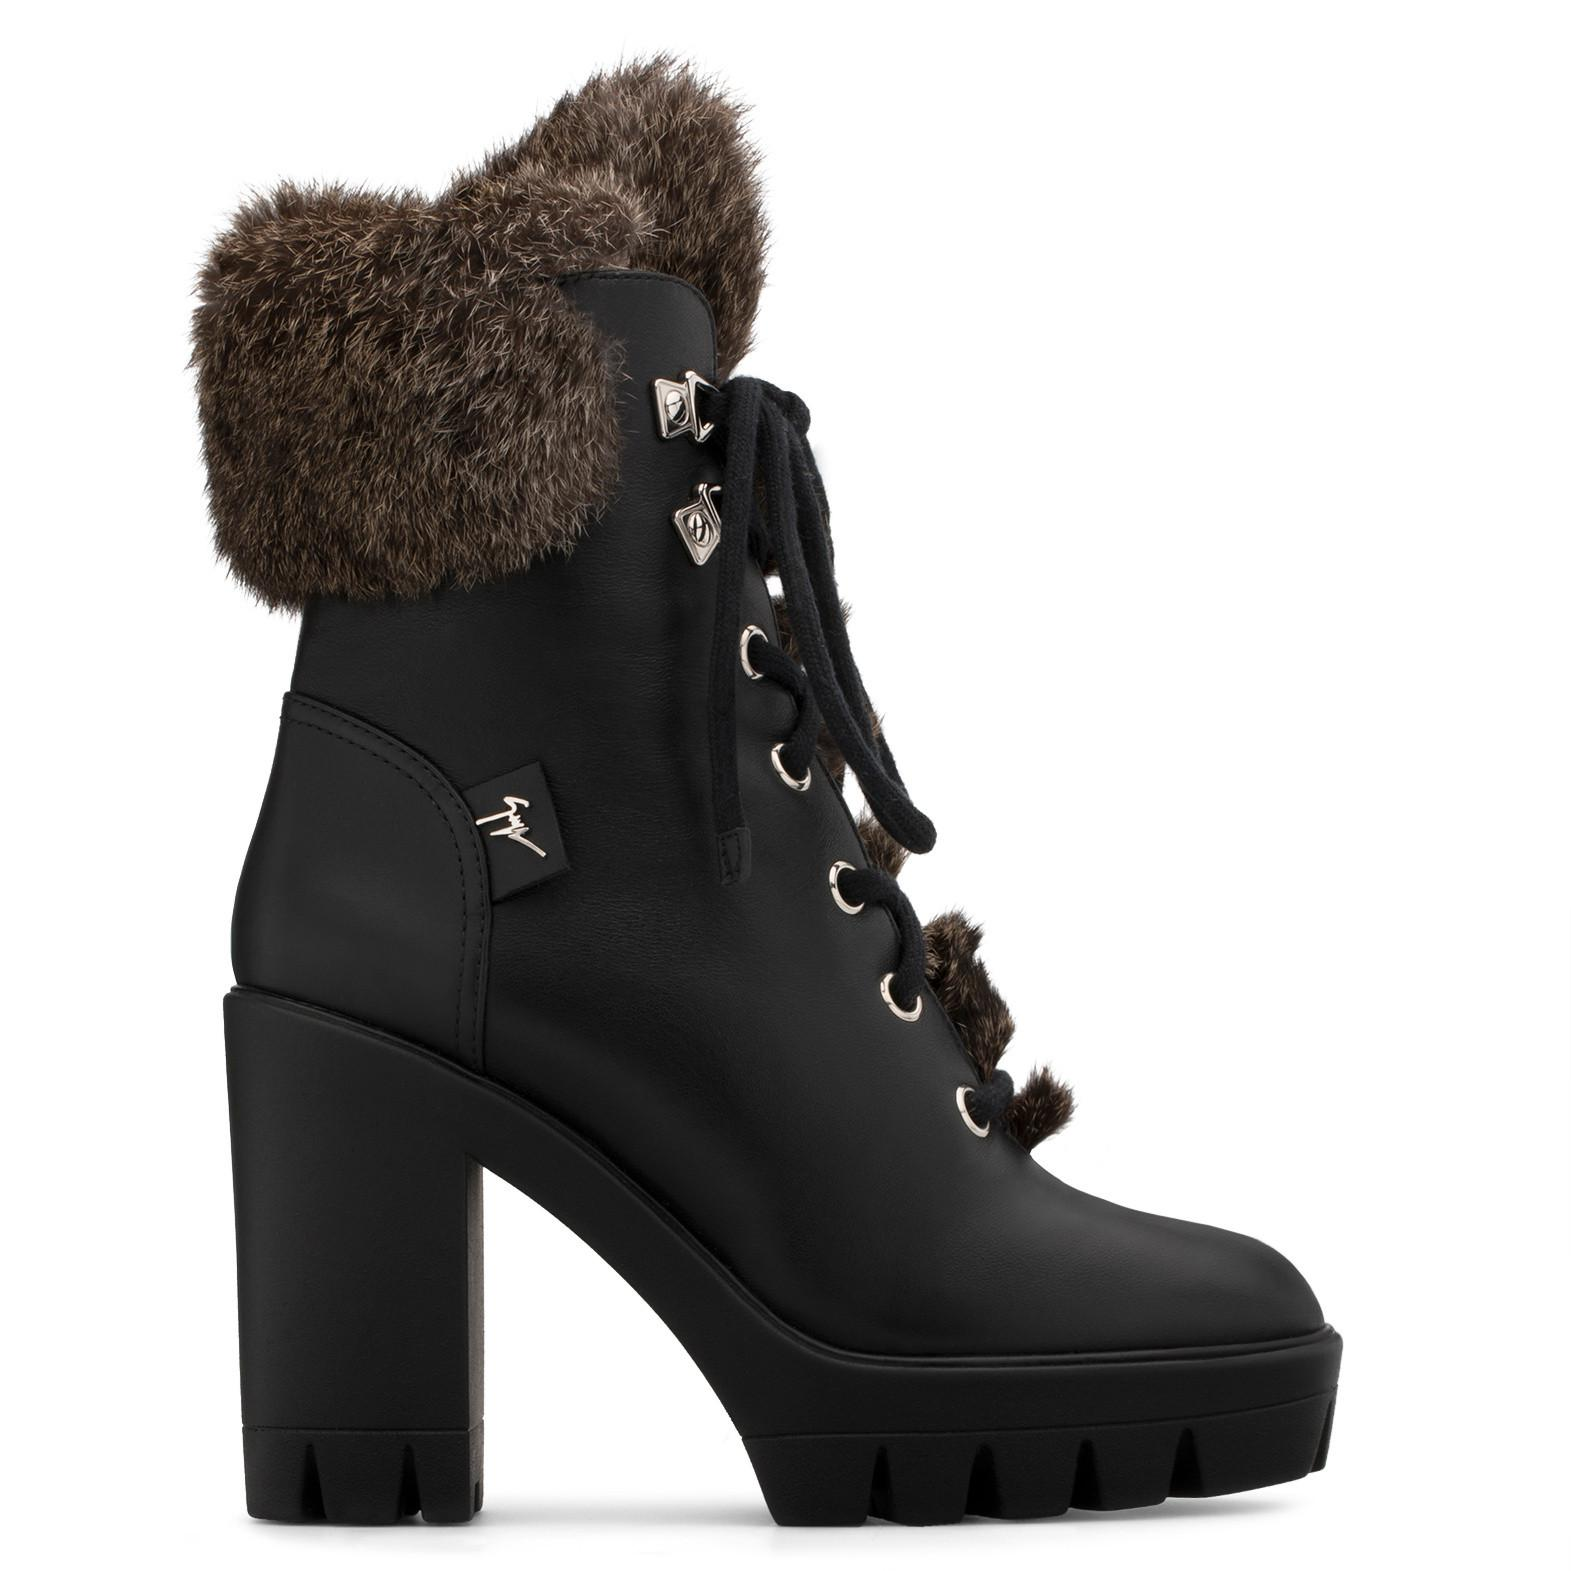 Giuseppe Zanotti Calfskin leather boot with lapin fur inside FREEDA jThpt4m